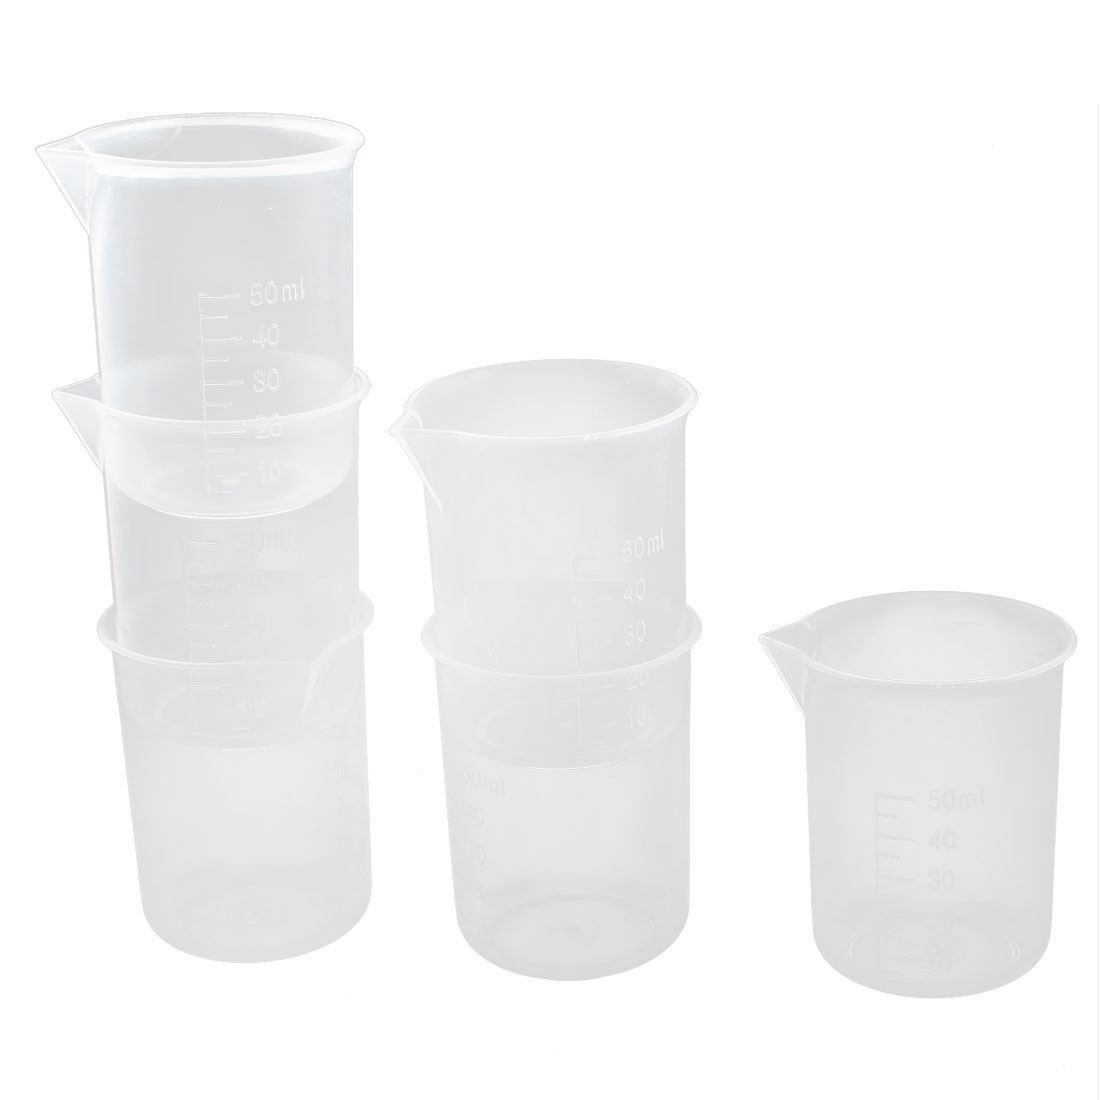 Kitchen Lab 50ml Clear Plastic Graduated Beaker Measuring Cups Tool 6pcs